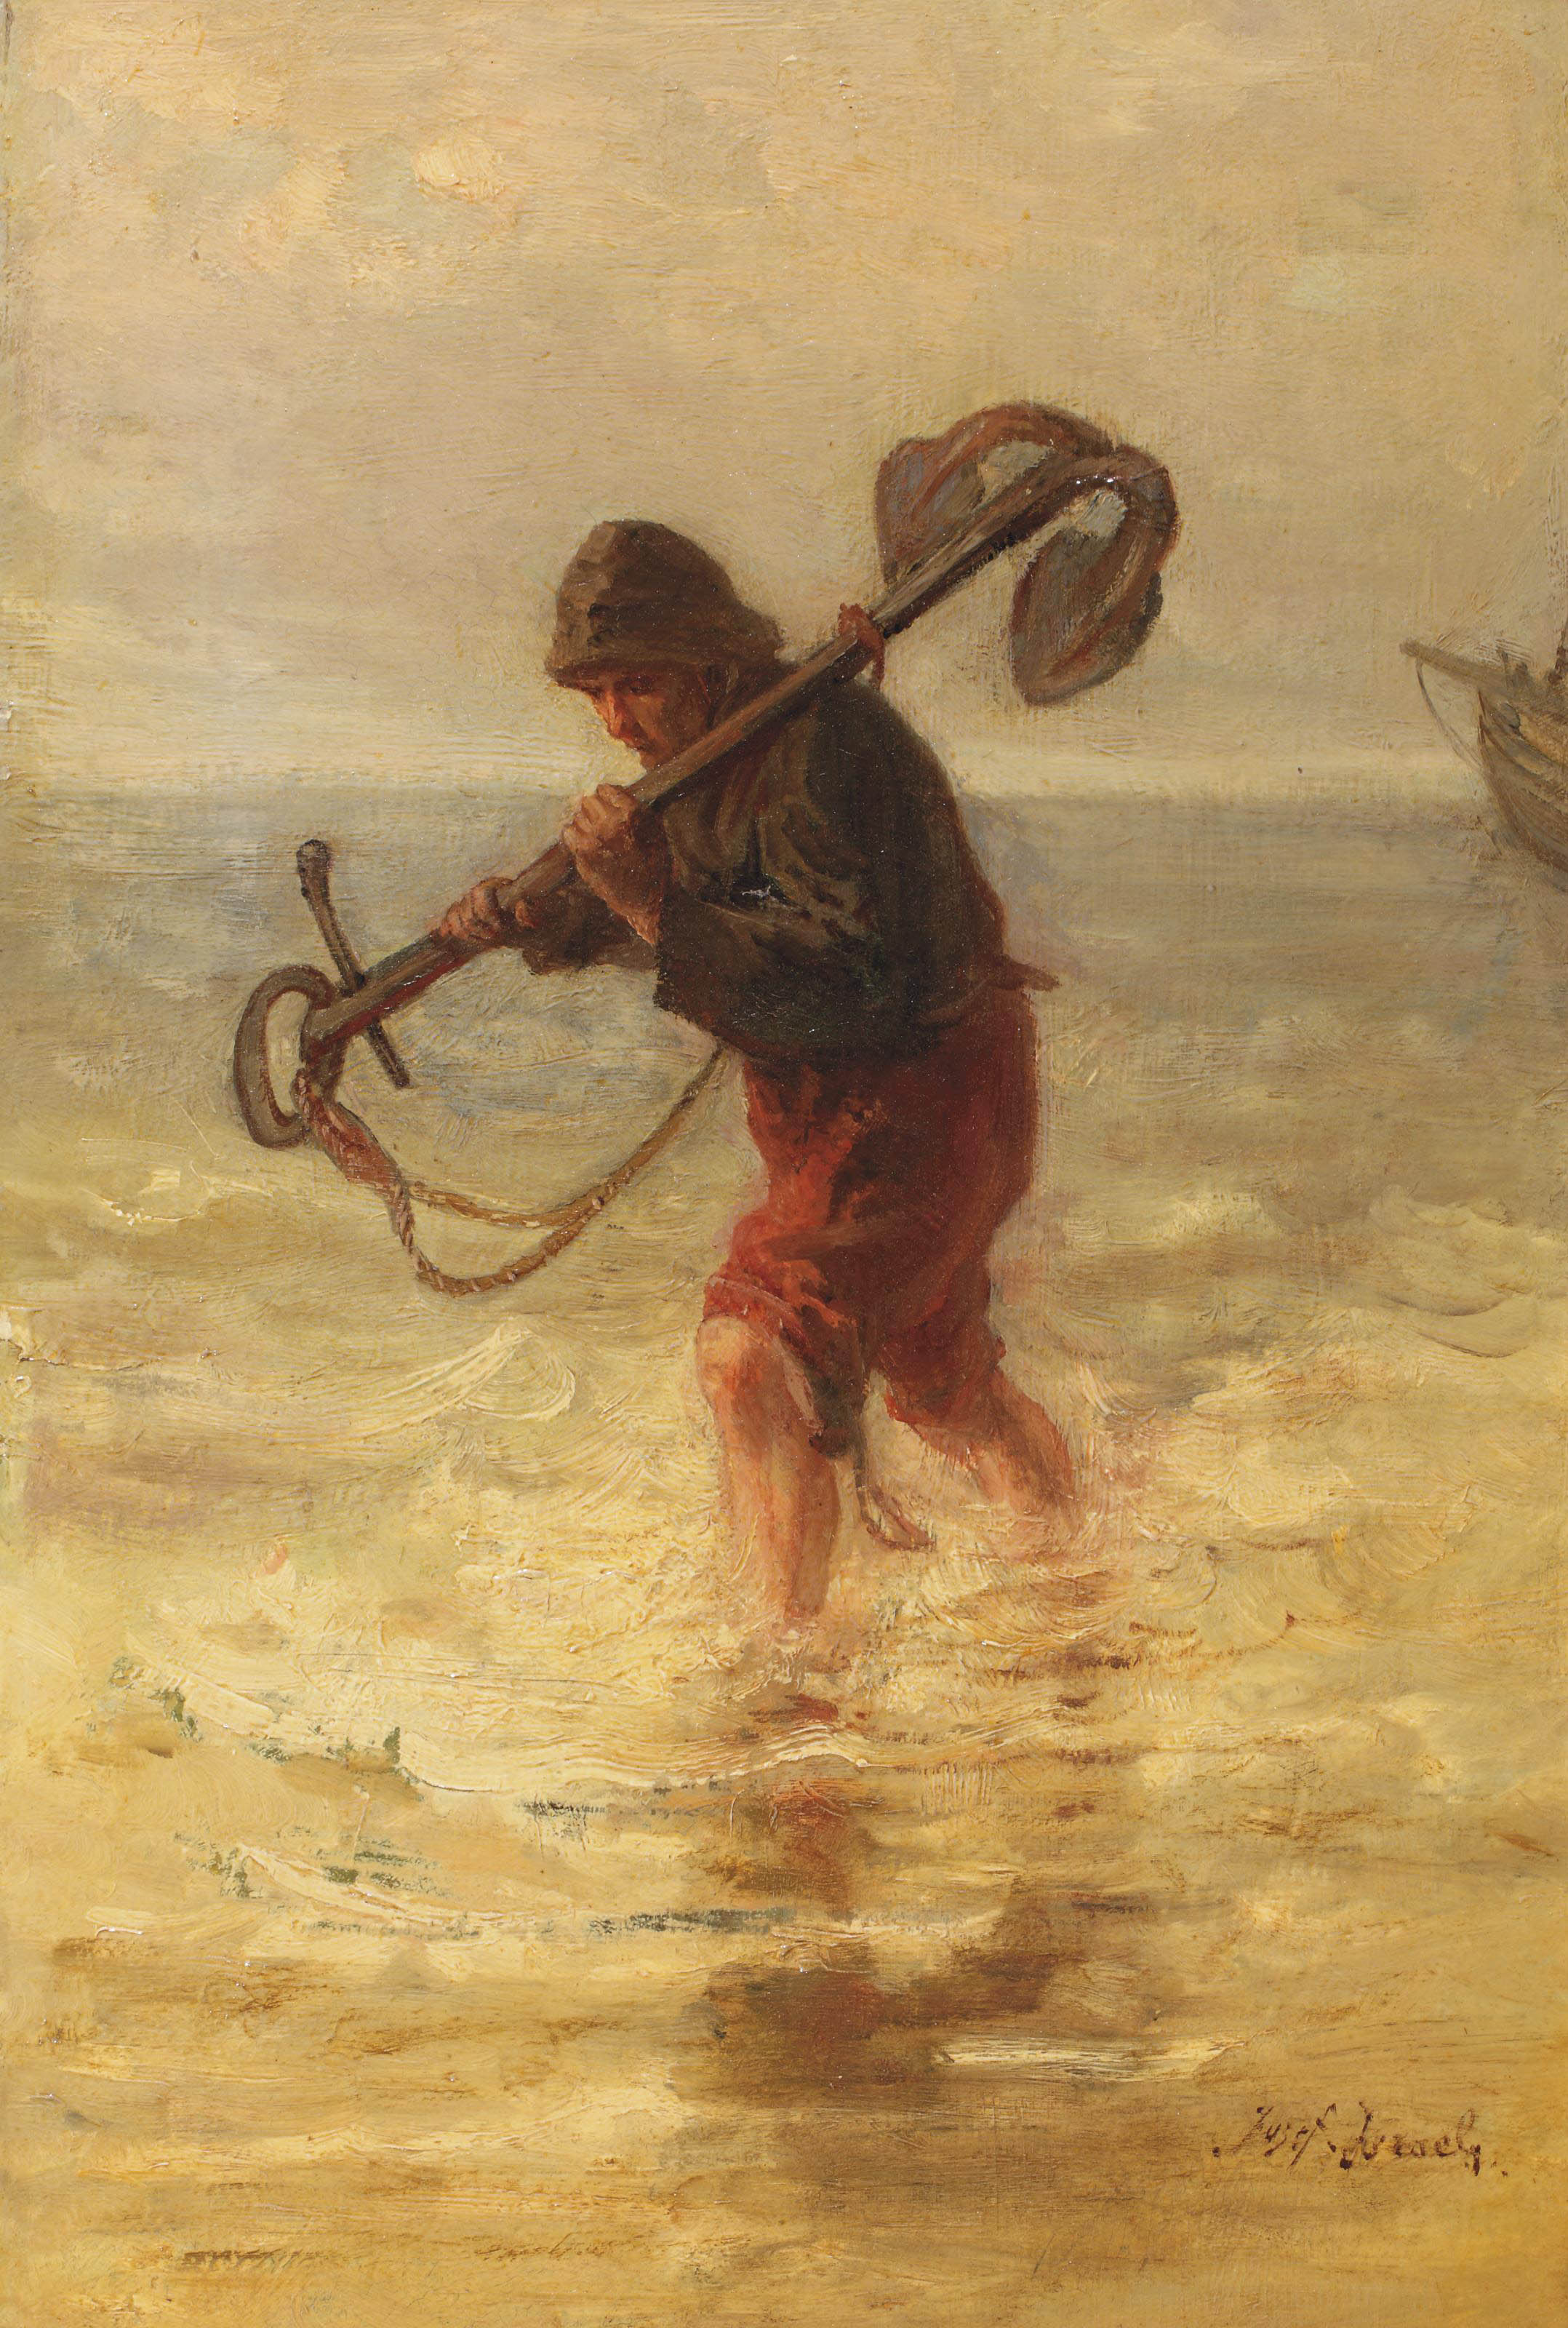 A fisherman with an anchor